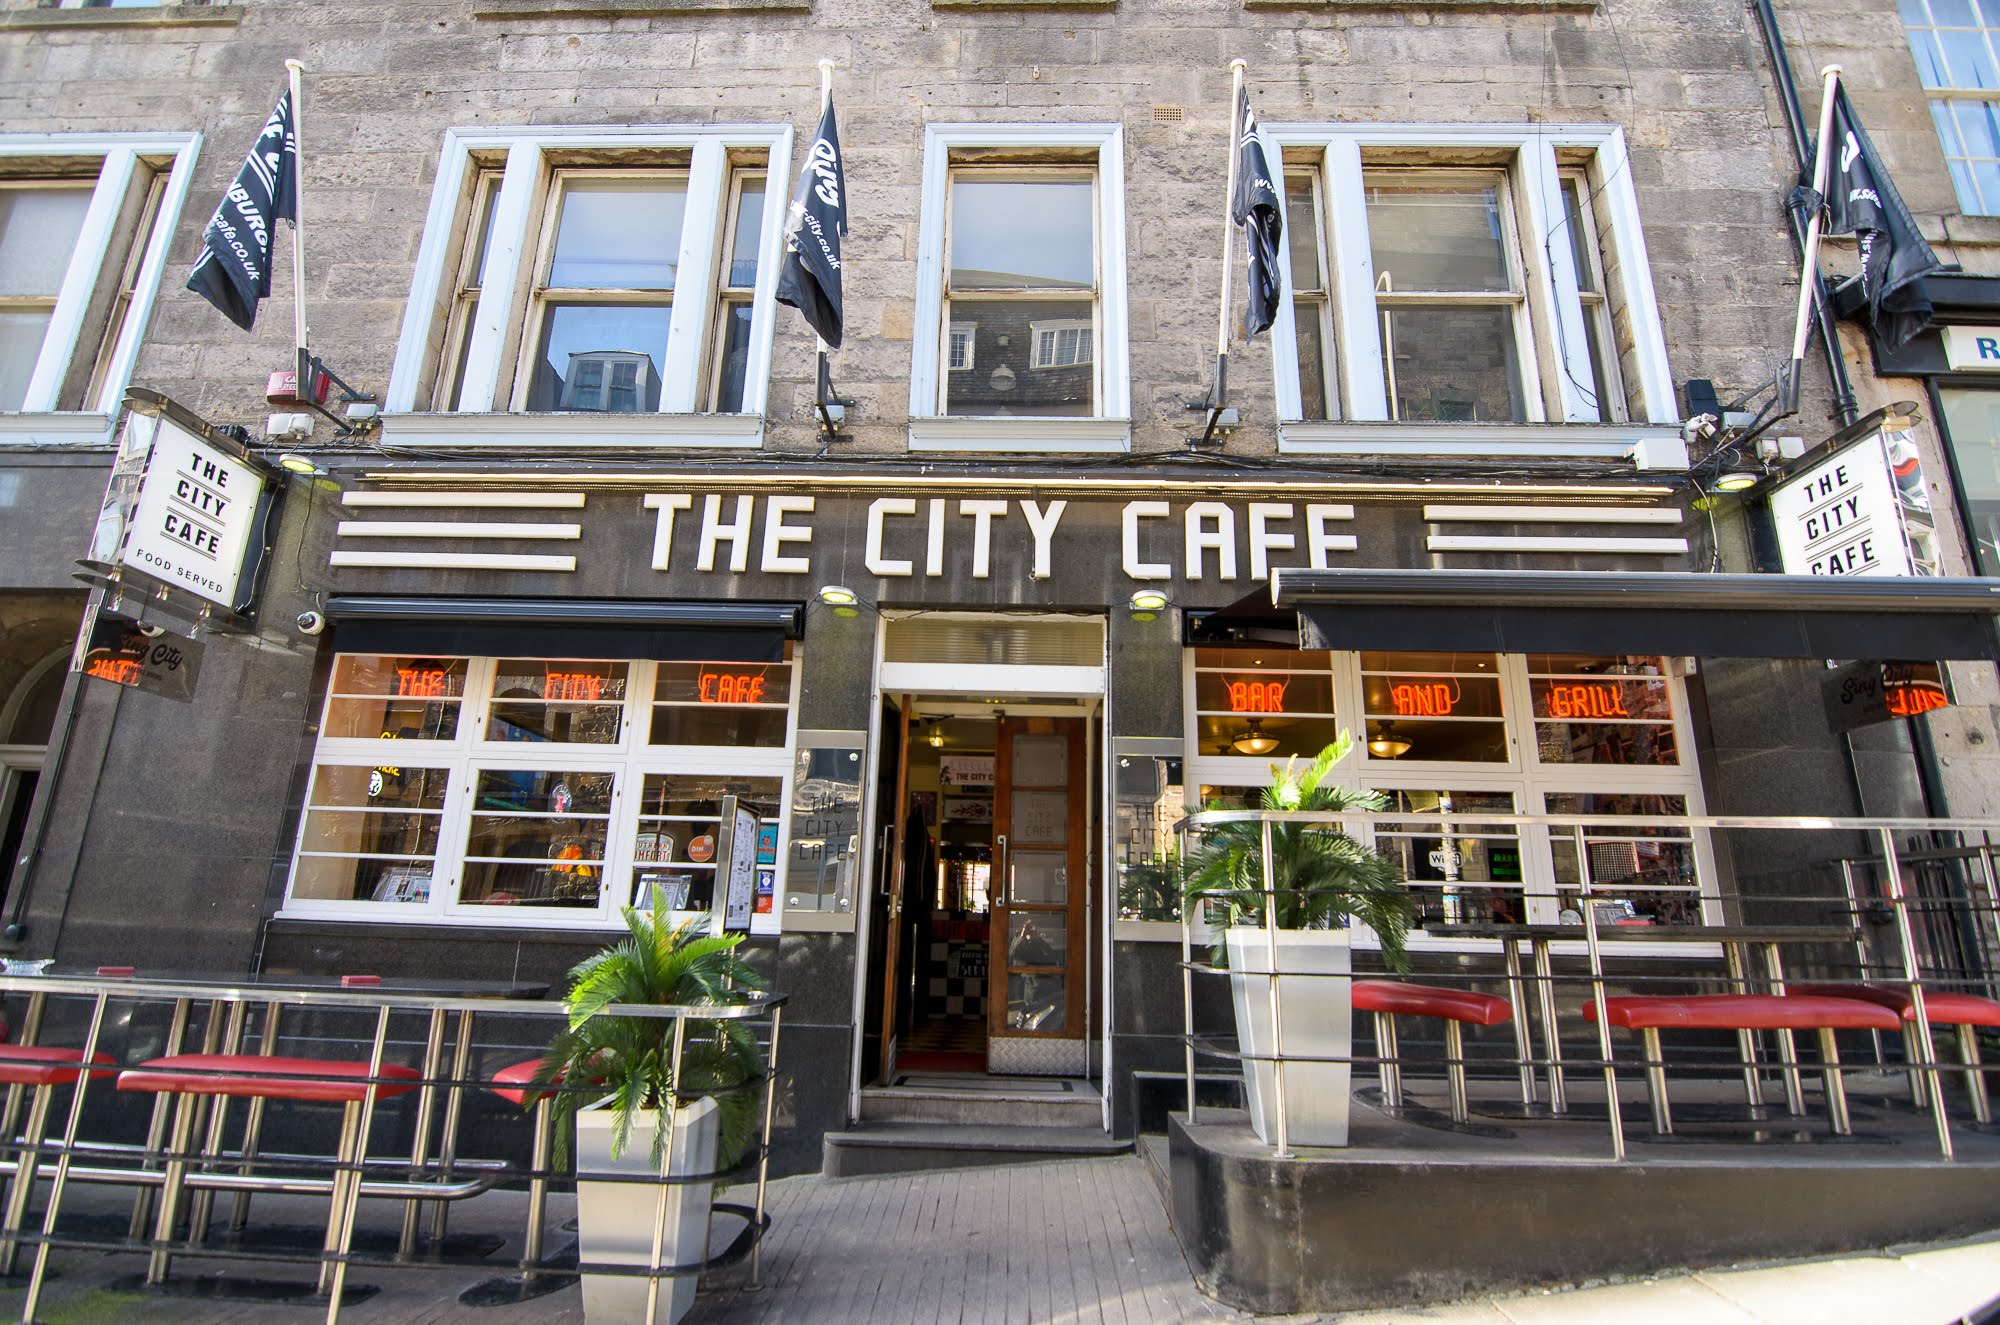 The City Cafe's entrance has a terrace